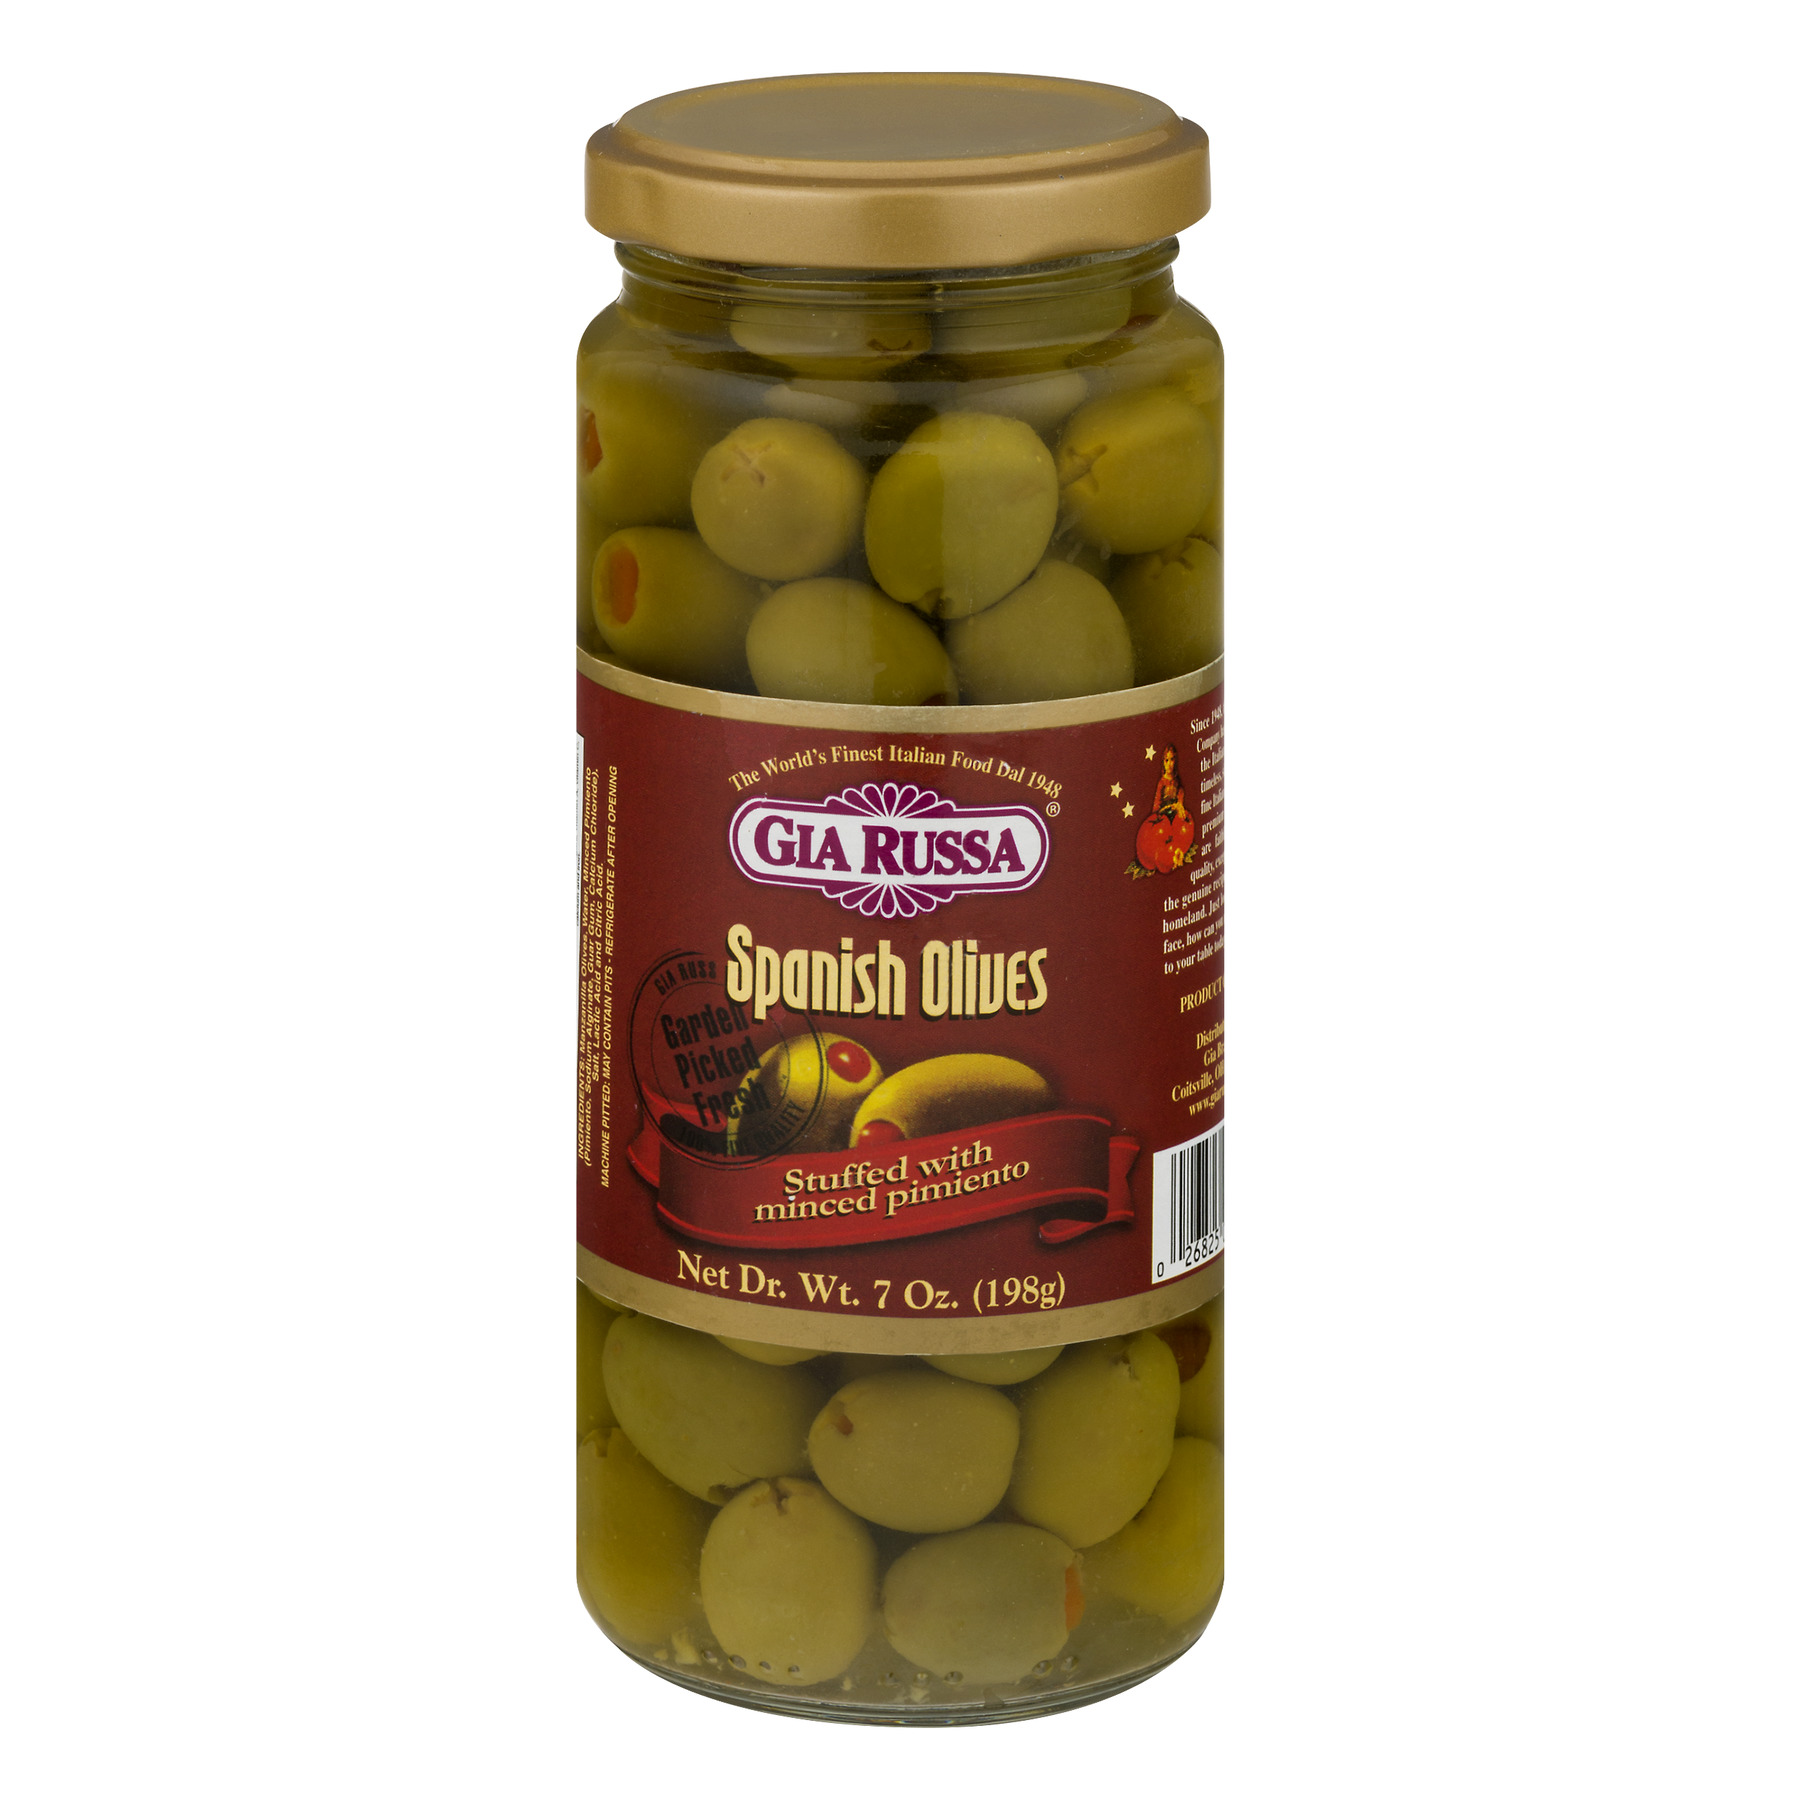 (2 Pack) Gia Russa Spanish Olives Stuffed with Minced Pimiento, 7 oz